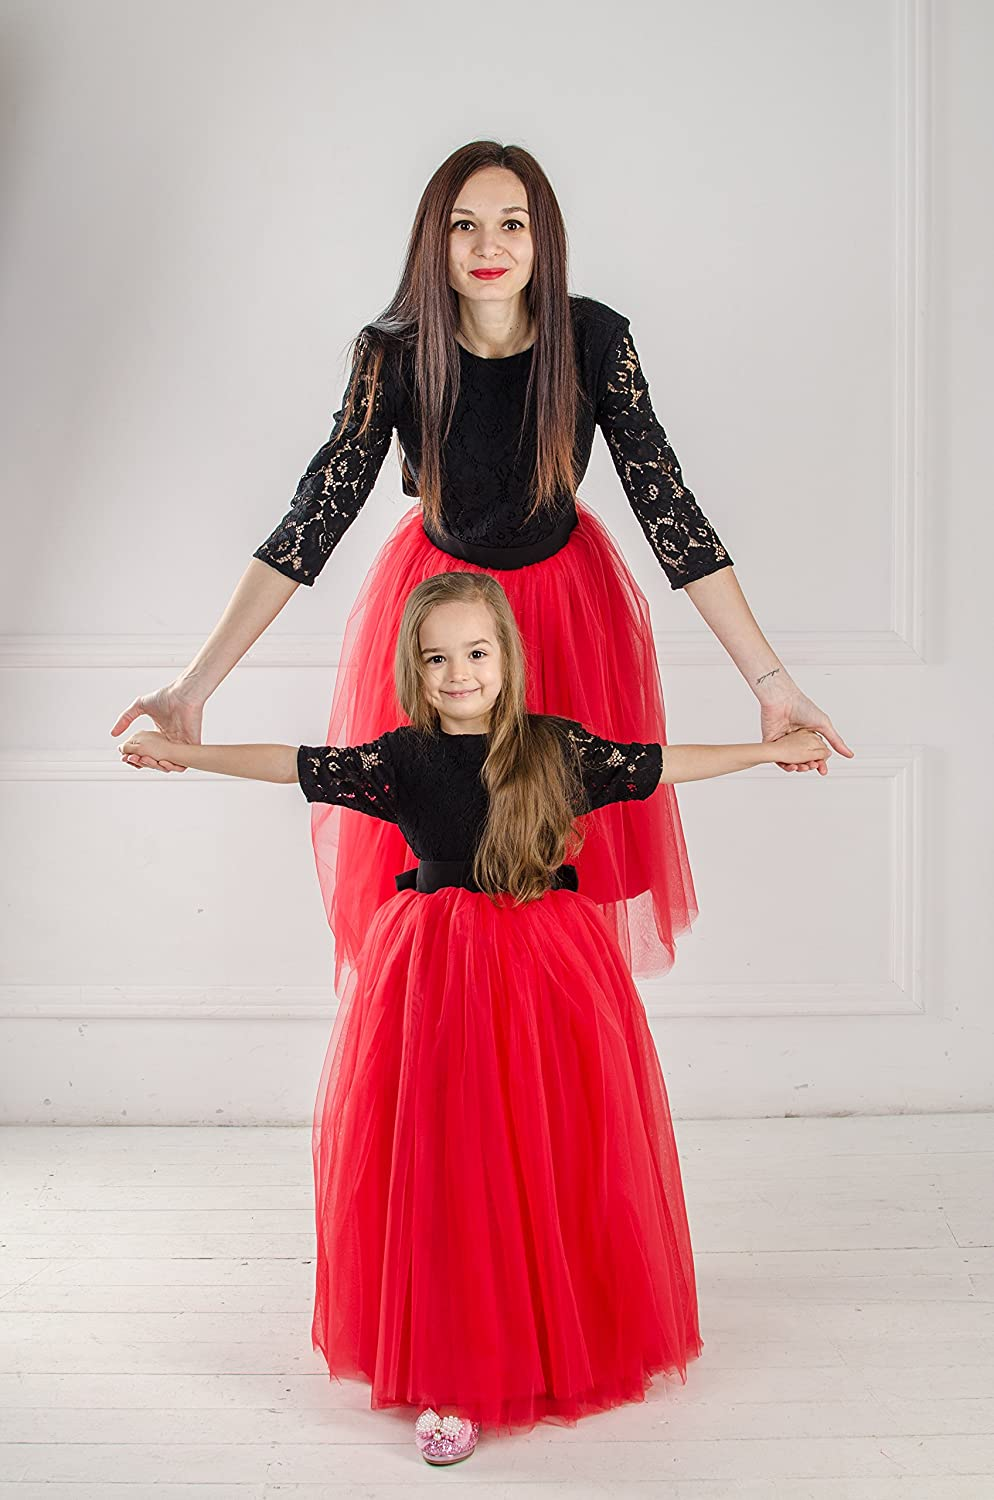 Amazon.com  Red and black matching dress dresses outfits Mother daughter  Mommy and Me lace tutu dresses Black lace dresses Mother and Me birthday  dress  ... f7a97e0cf